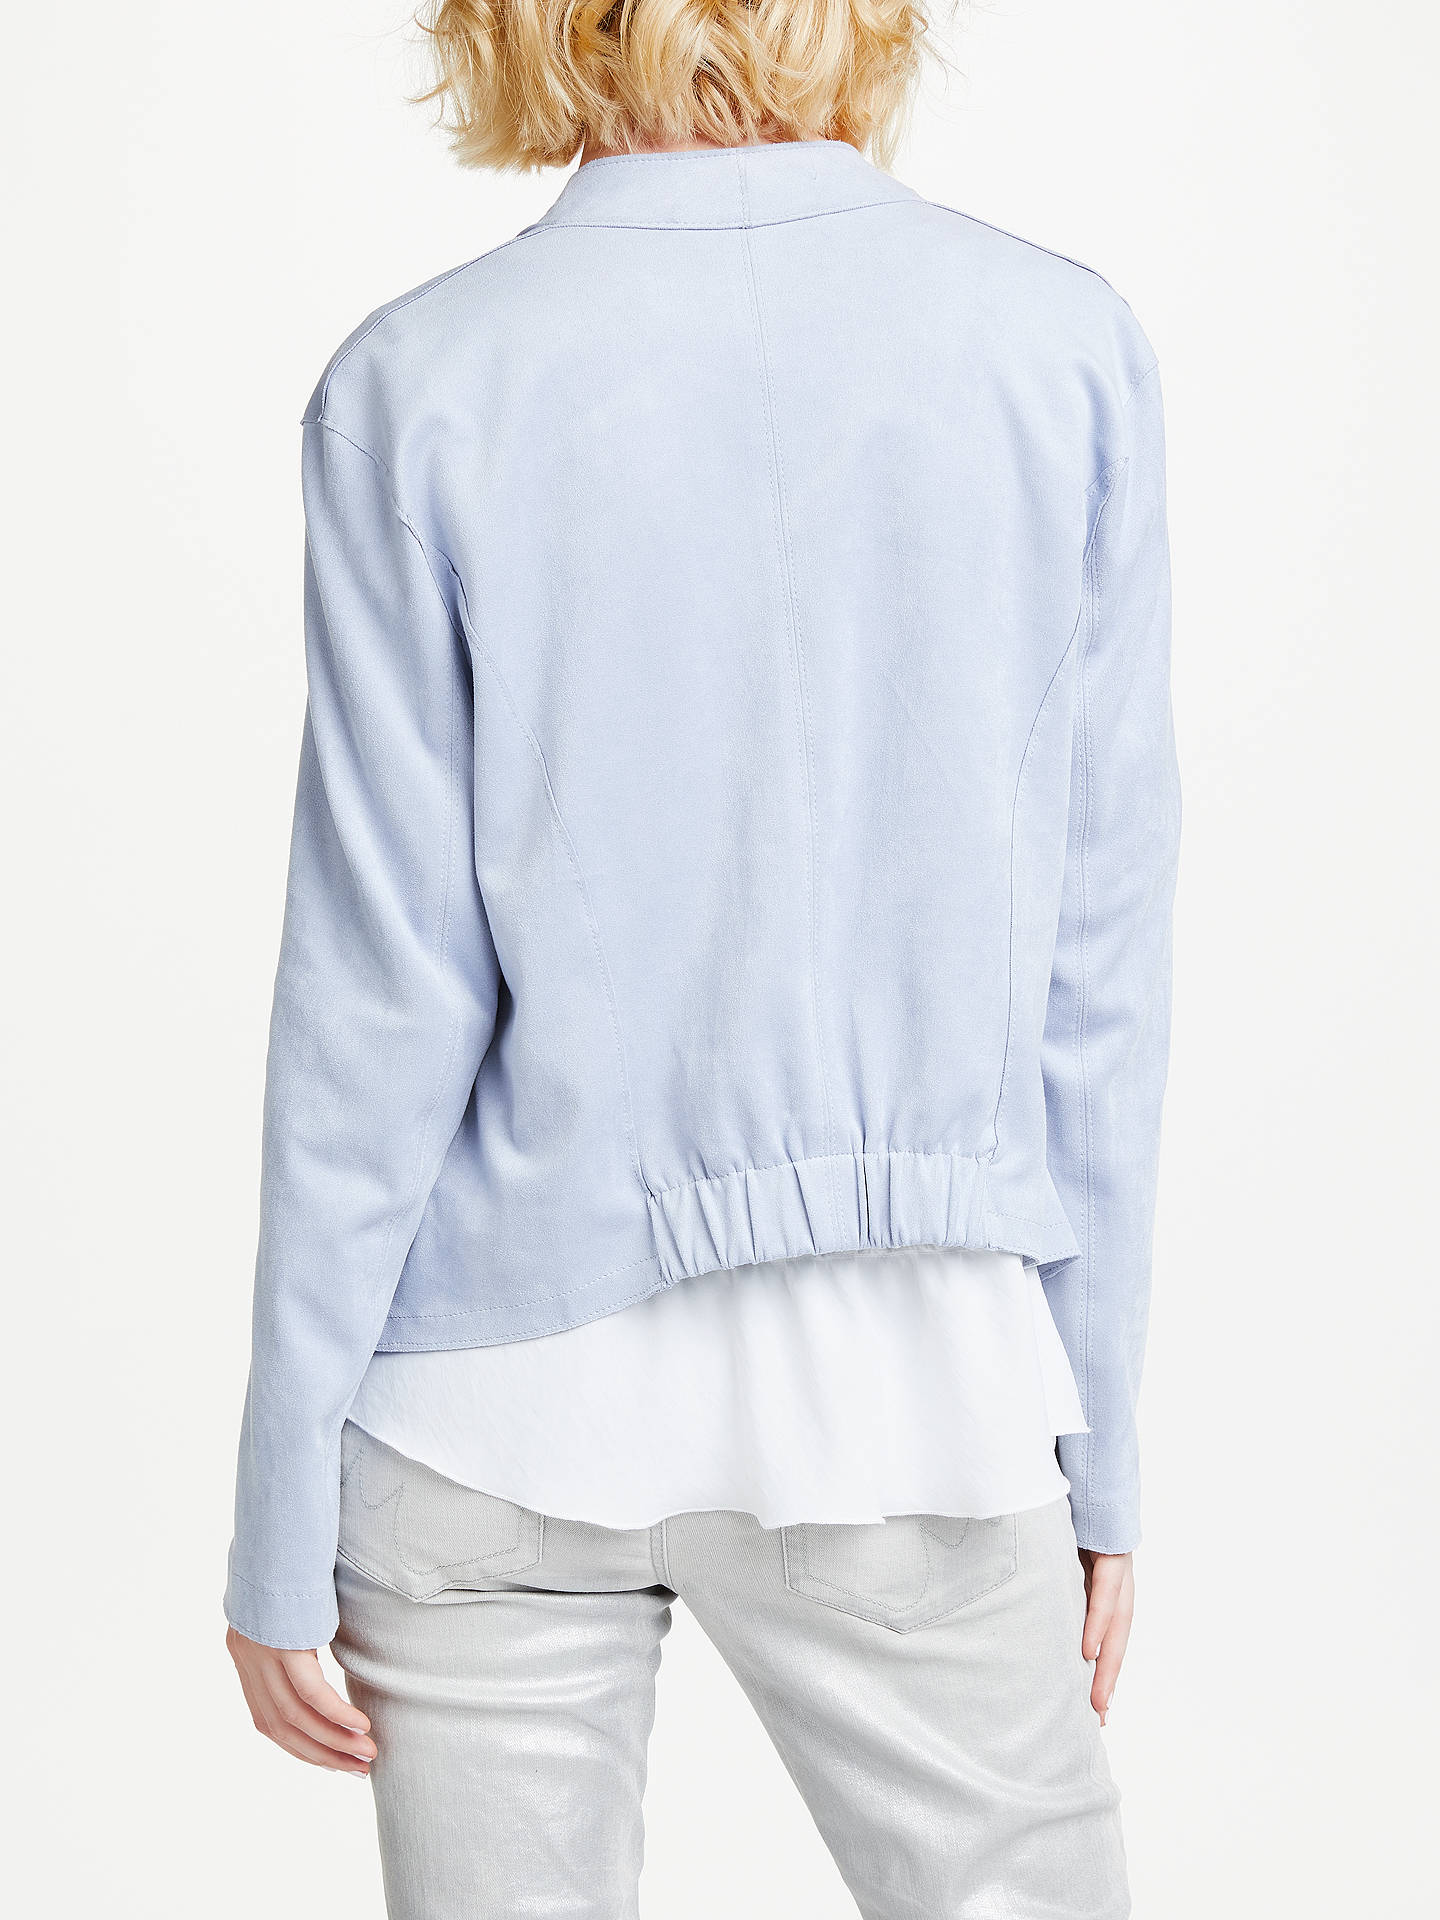 BuyMarc Cain Faux Suede Jacket, Blue, 12 Online at johnlewis.com